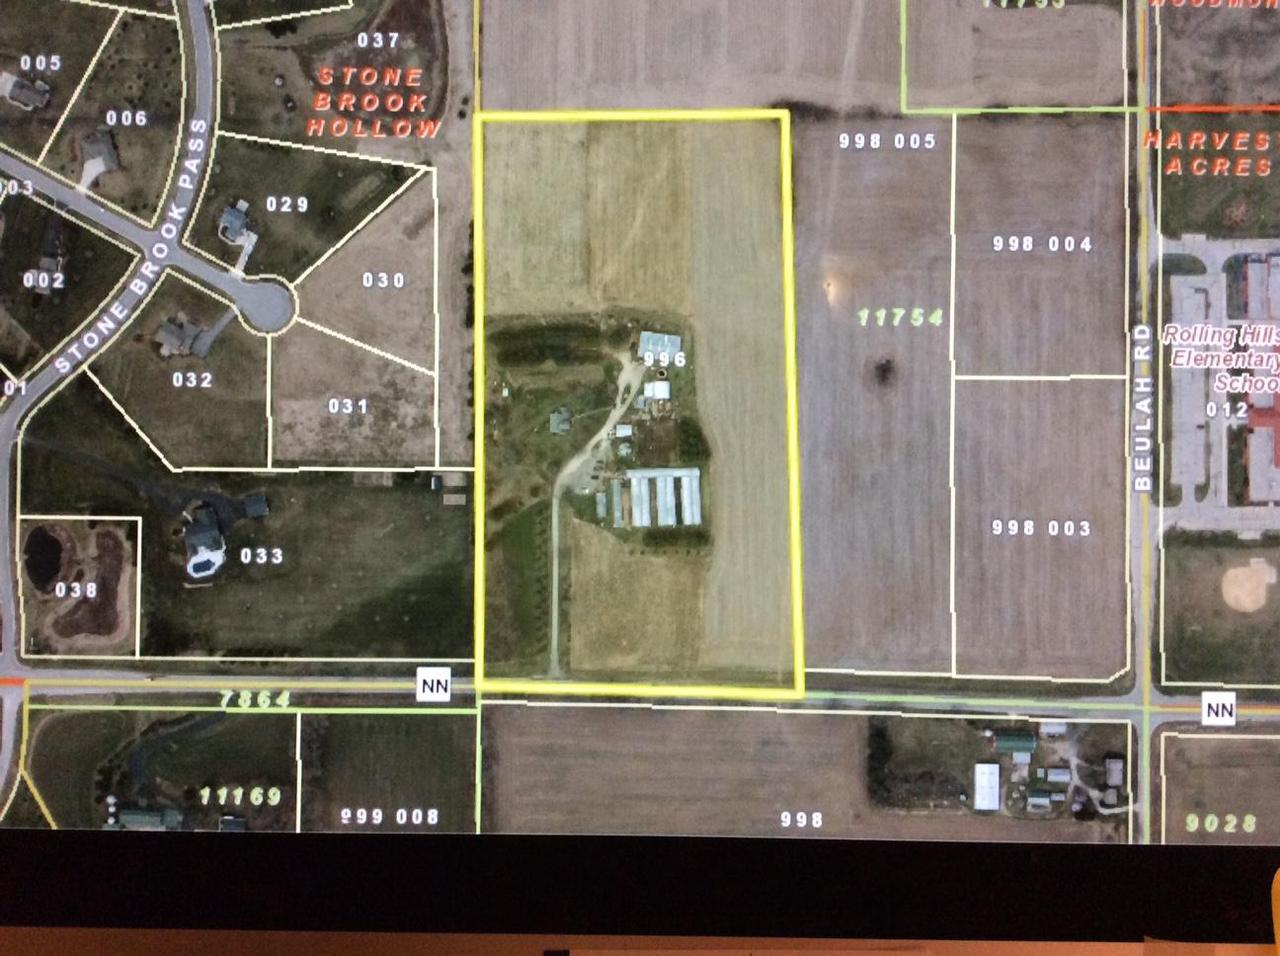 Looking for a Hobby Farm? Business minded? Want to be a Grower of Flowers, Herbs, HEMP, Wheat Grass, or ??? with 14,600 SQ FT of Greenhouse with 4 Natural Gas Furnaces & Back-up Generator! Long time owner/operator has retired transferring on decades of loyal customers! Current Zoning allows for you to sell what you grow. Approximately 11 Acres tillable land for additional income/Produce, sustainable farming, or plenty of pasture area for Horses! 1870 Farm House offers Newer Mound System, Well, Furnace, and A/C. The 3 Bedroom, 2 Bath home is a ''fixer/upper'' and offers loads of potential! 40x80 Steel Truss Pole Building, plus additional out buildings perfect for animals and hobbies! Per seller there is potential for land division for an additional buildable site, per county/town approval.